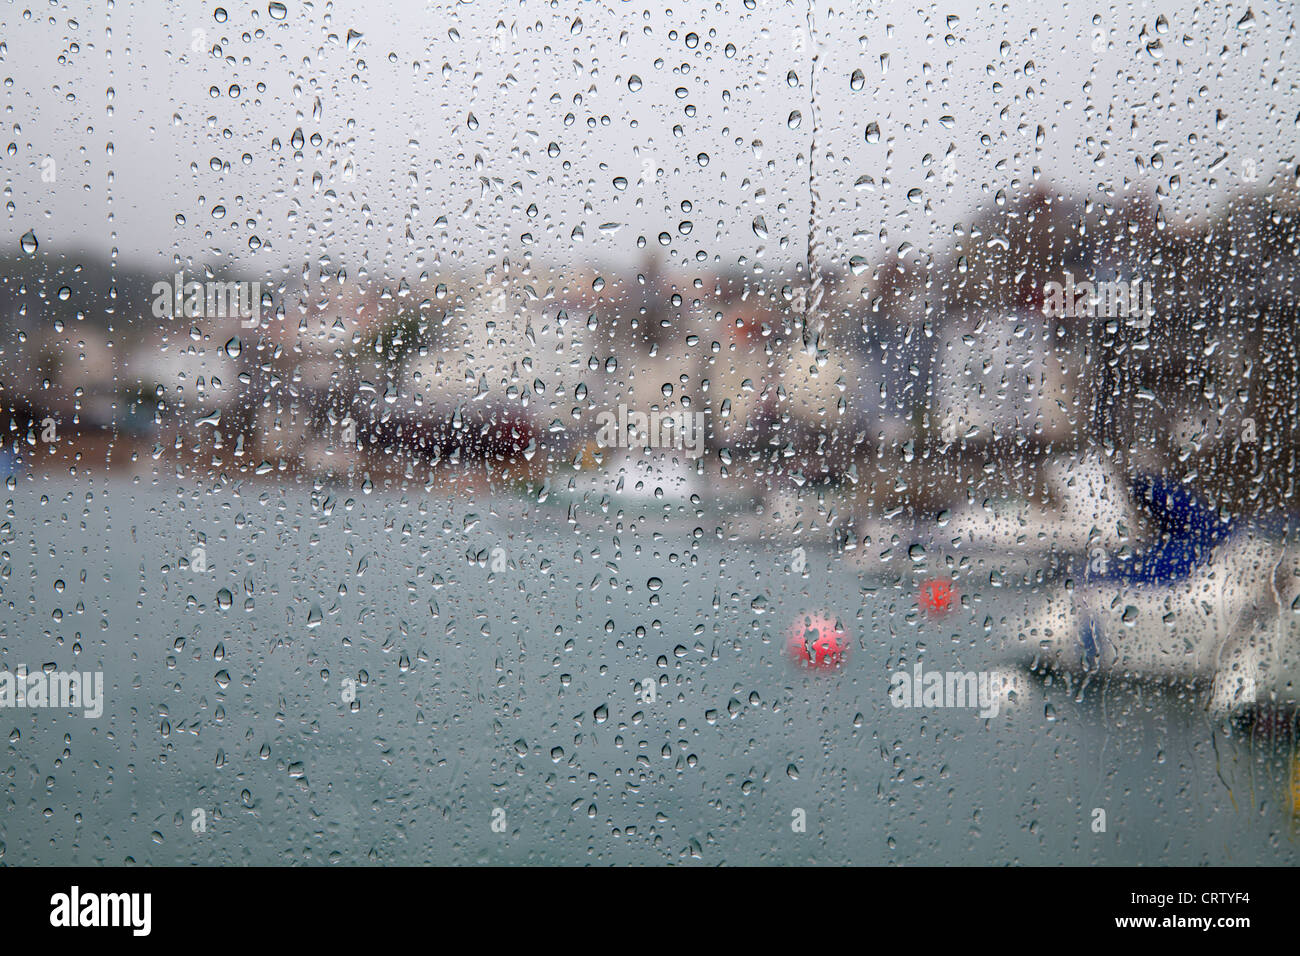 Rain drops on the windows of the ferry to Herm overlooking St Peter Port harbour, Guernsey - Stock Image